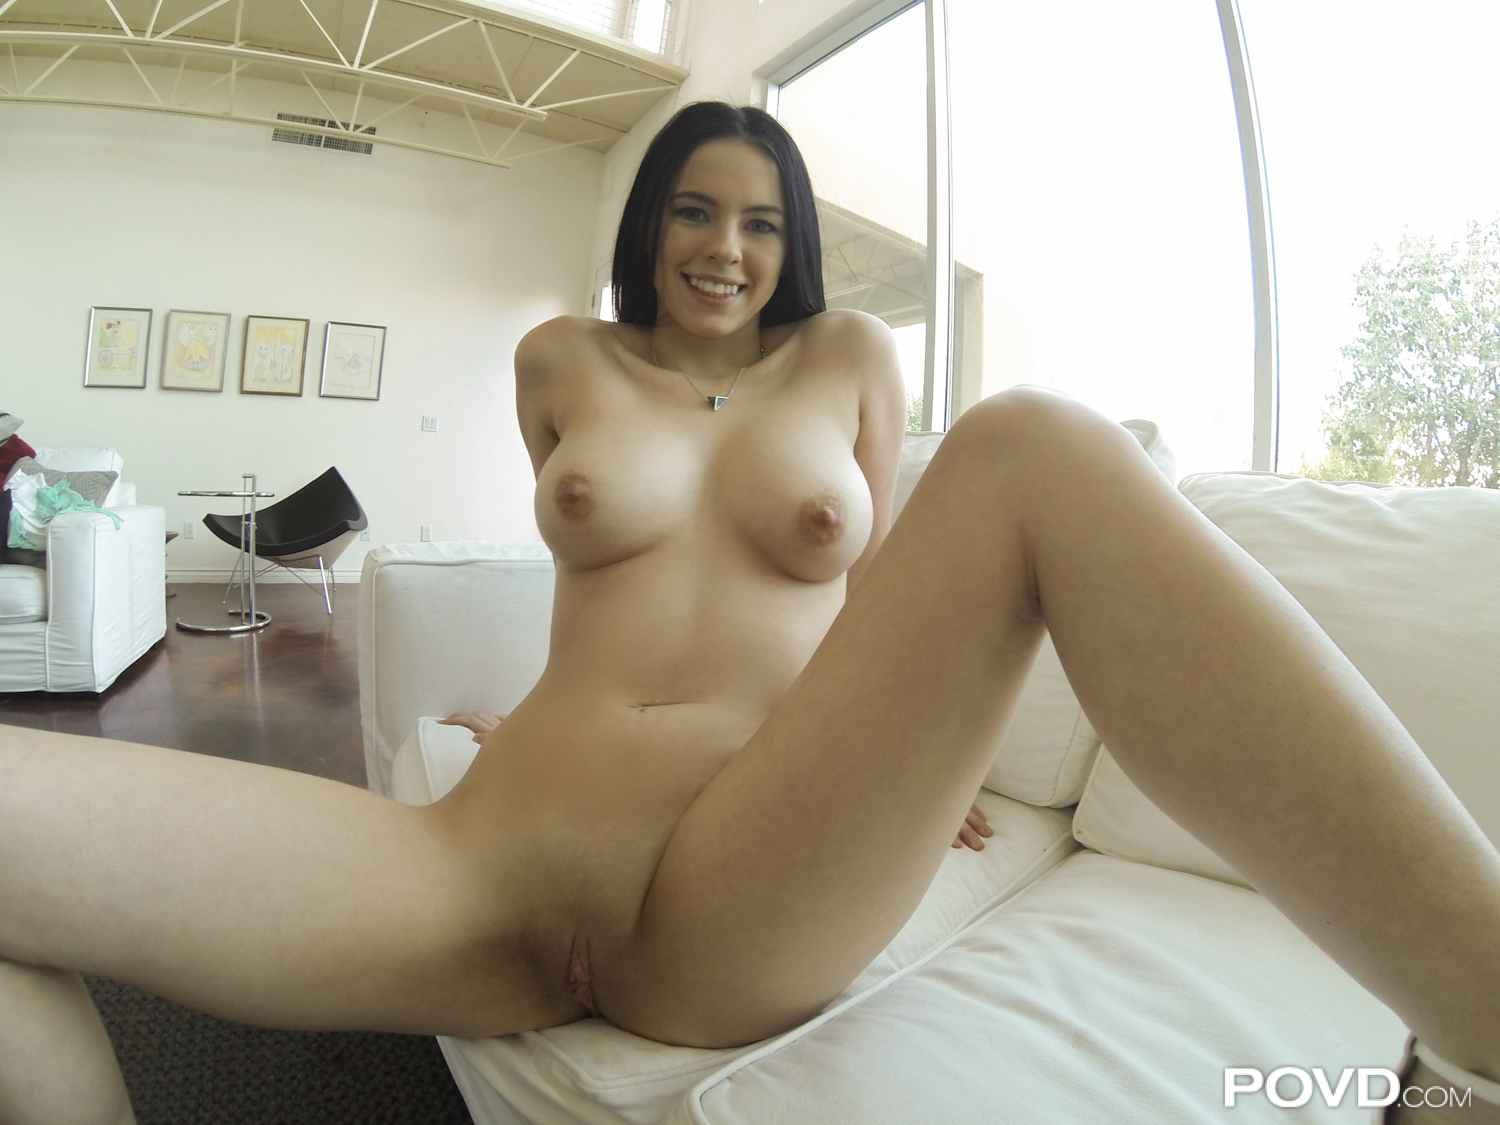 1 month free member password for povd 2014-06-05